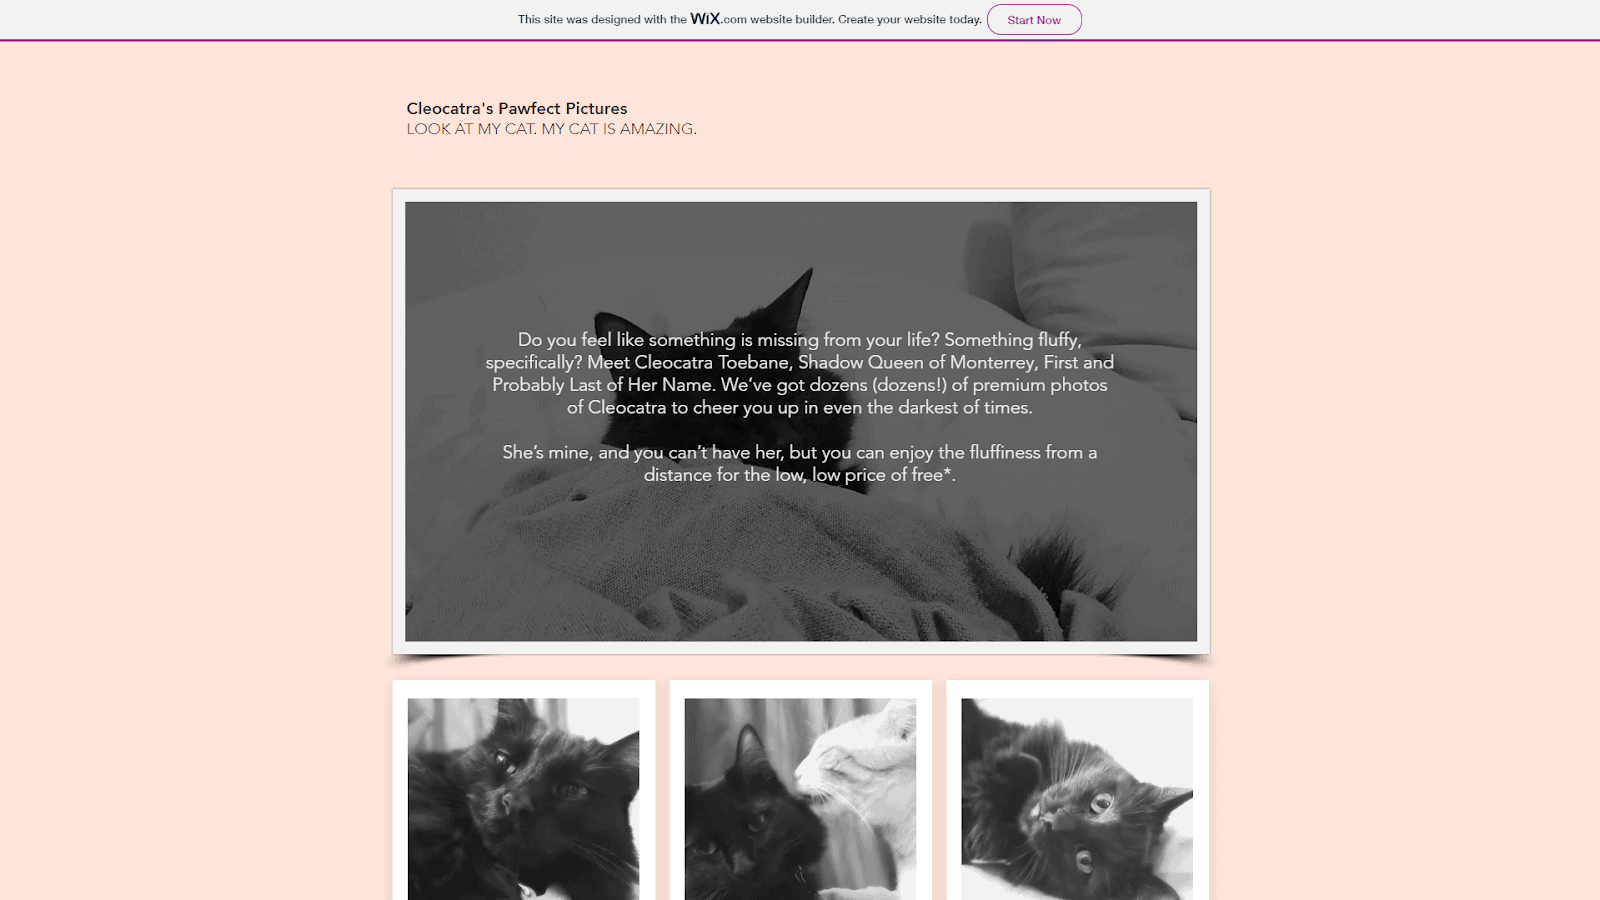 A cat-obsessed demo site built with Wix